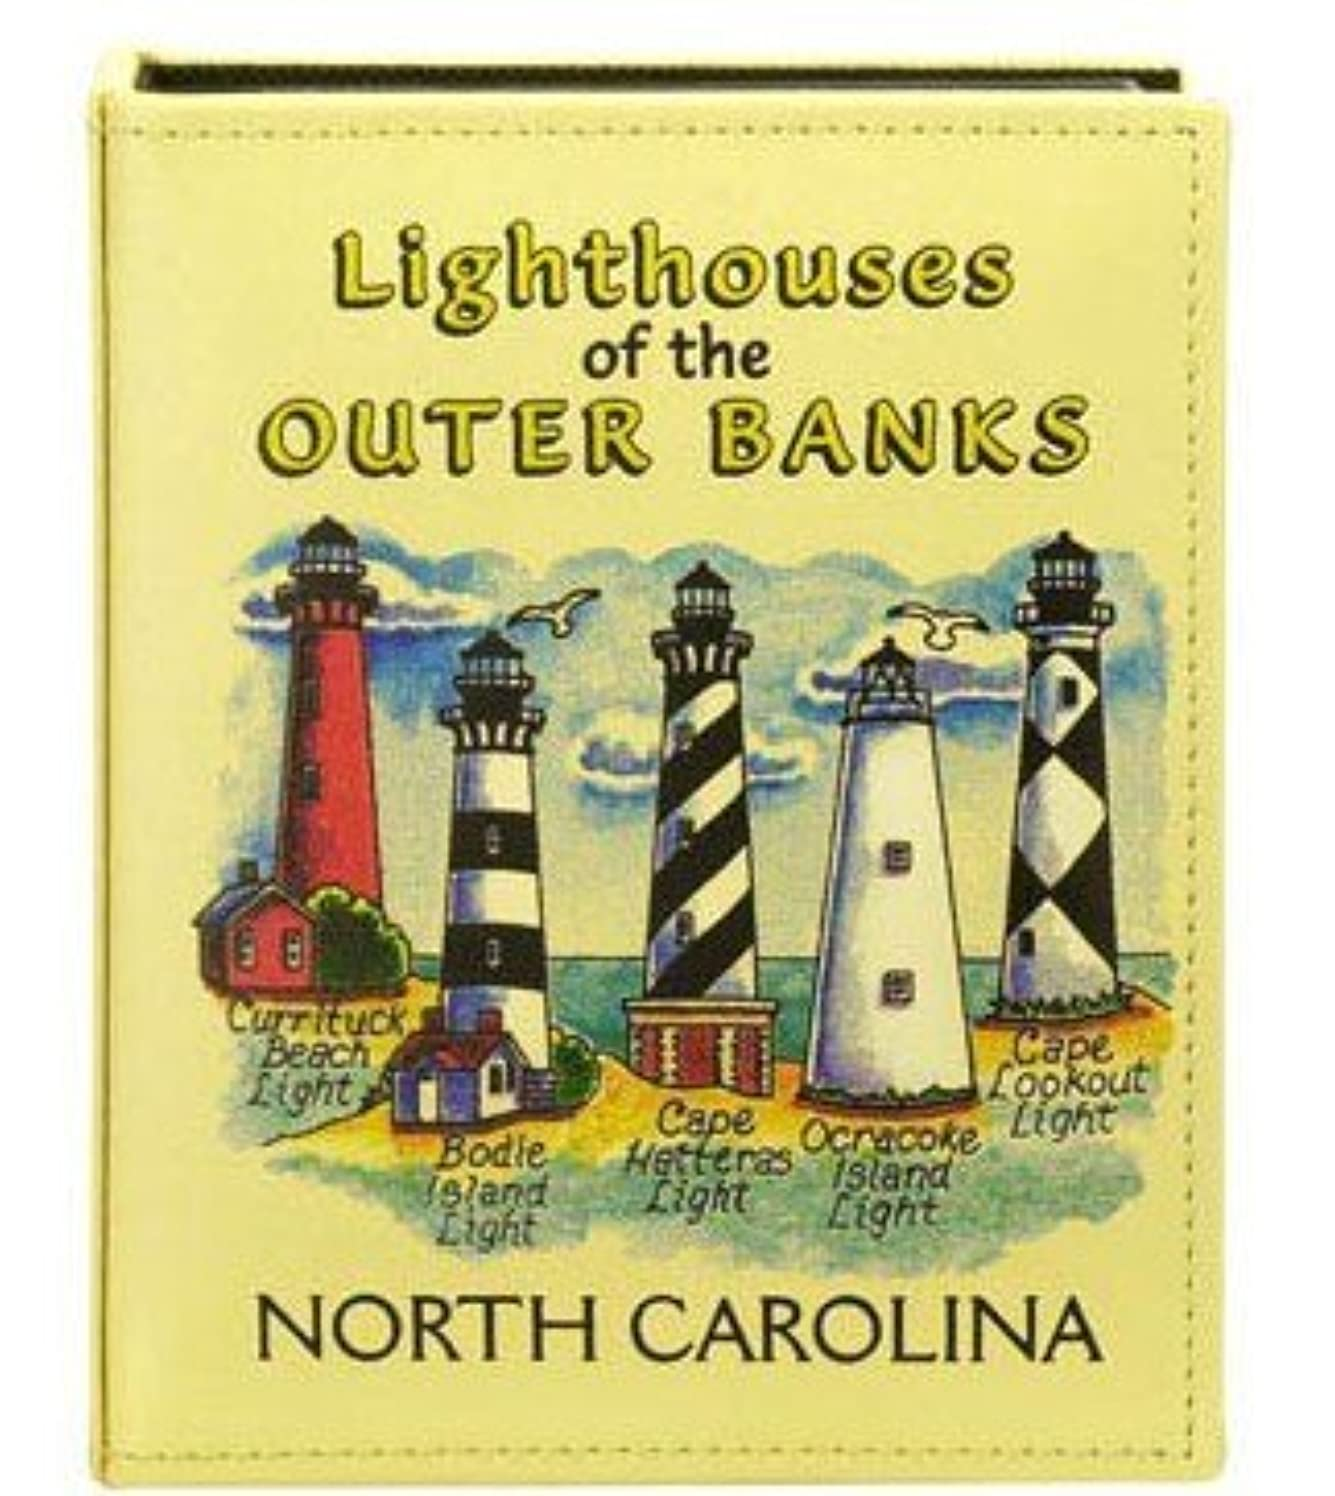 Outer Banks Lighthouses North Carolina Embossed Photo Album 100 Photos / 4x6